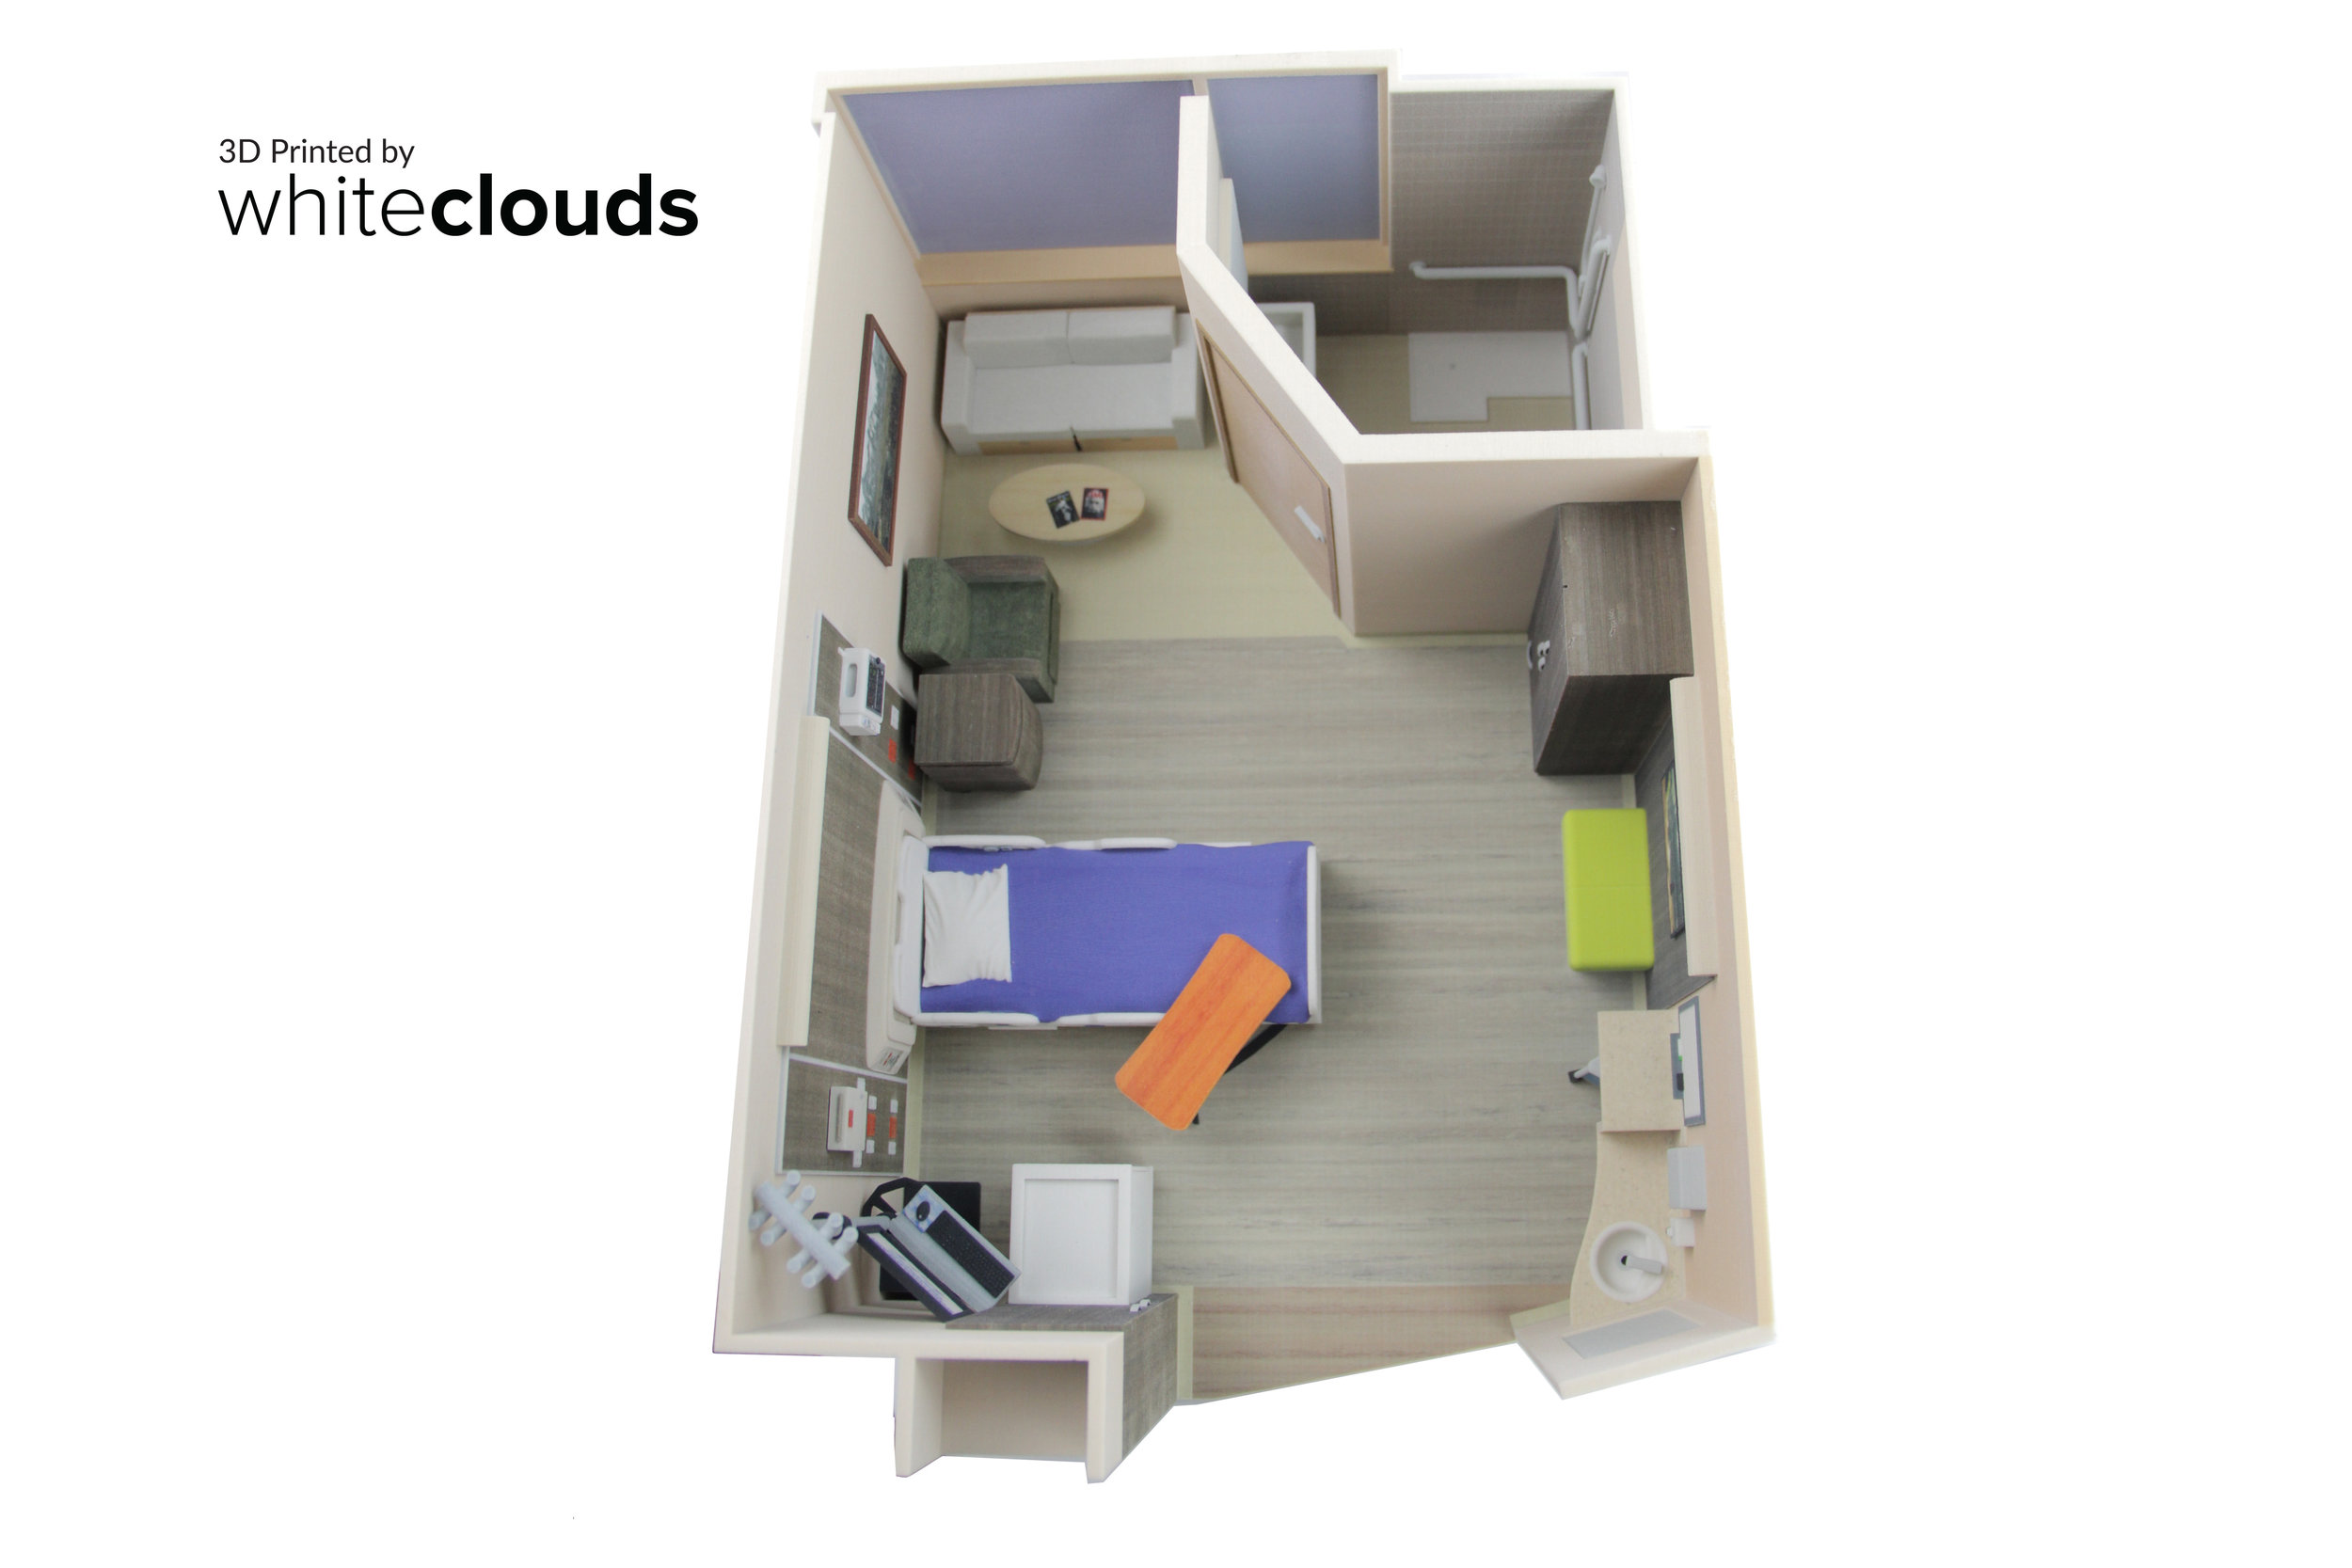 3D-Printed-WhiteClouds-Patient-Room-Architectural-IHC-Interior-Clean-2.jpg